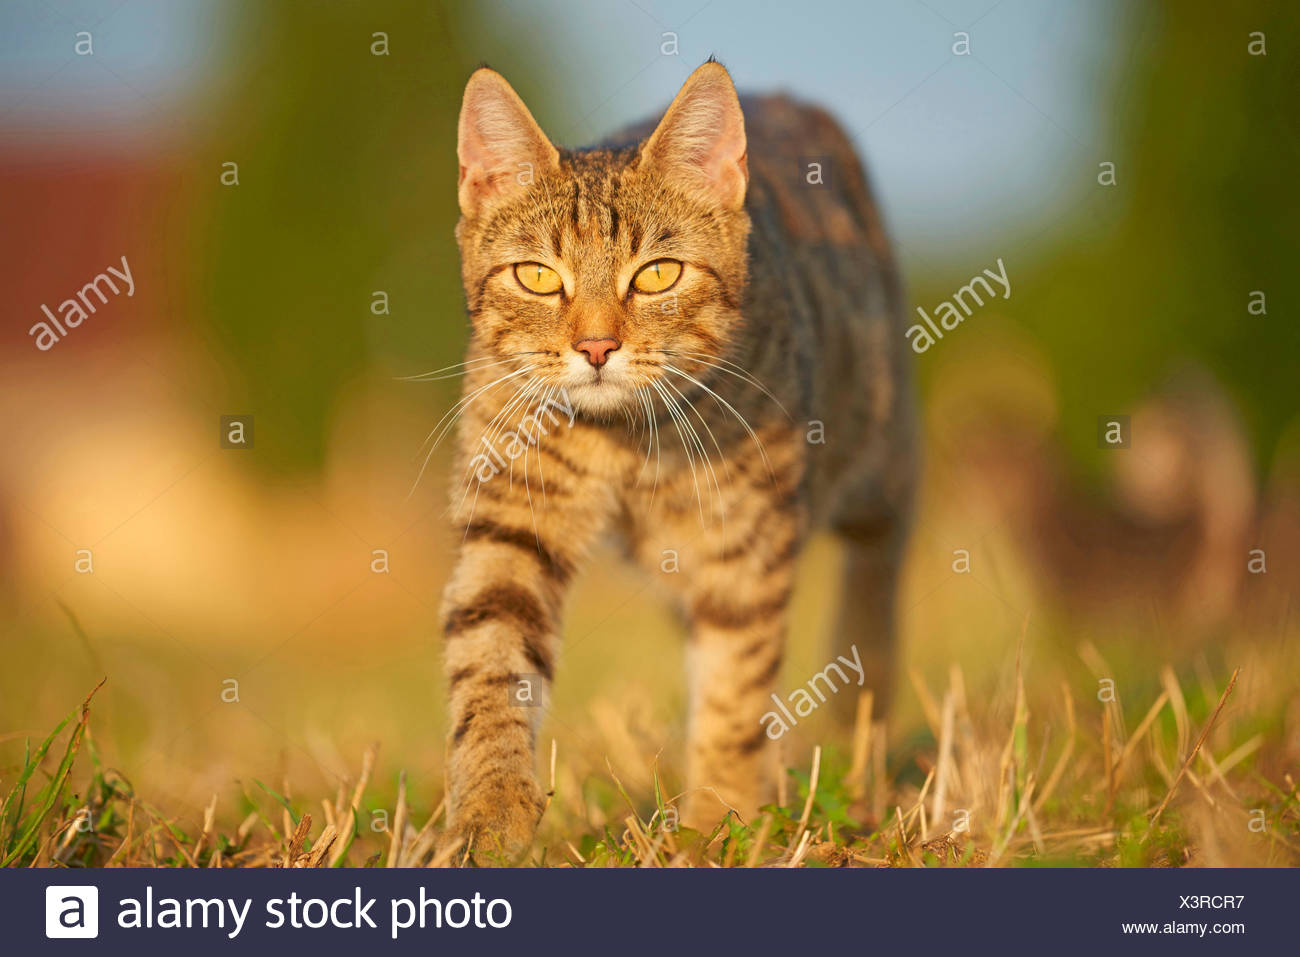 domestic cat, house cat (Felis silvestris f. catus), walking in a meadow, front view, Germany - Stock Image